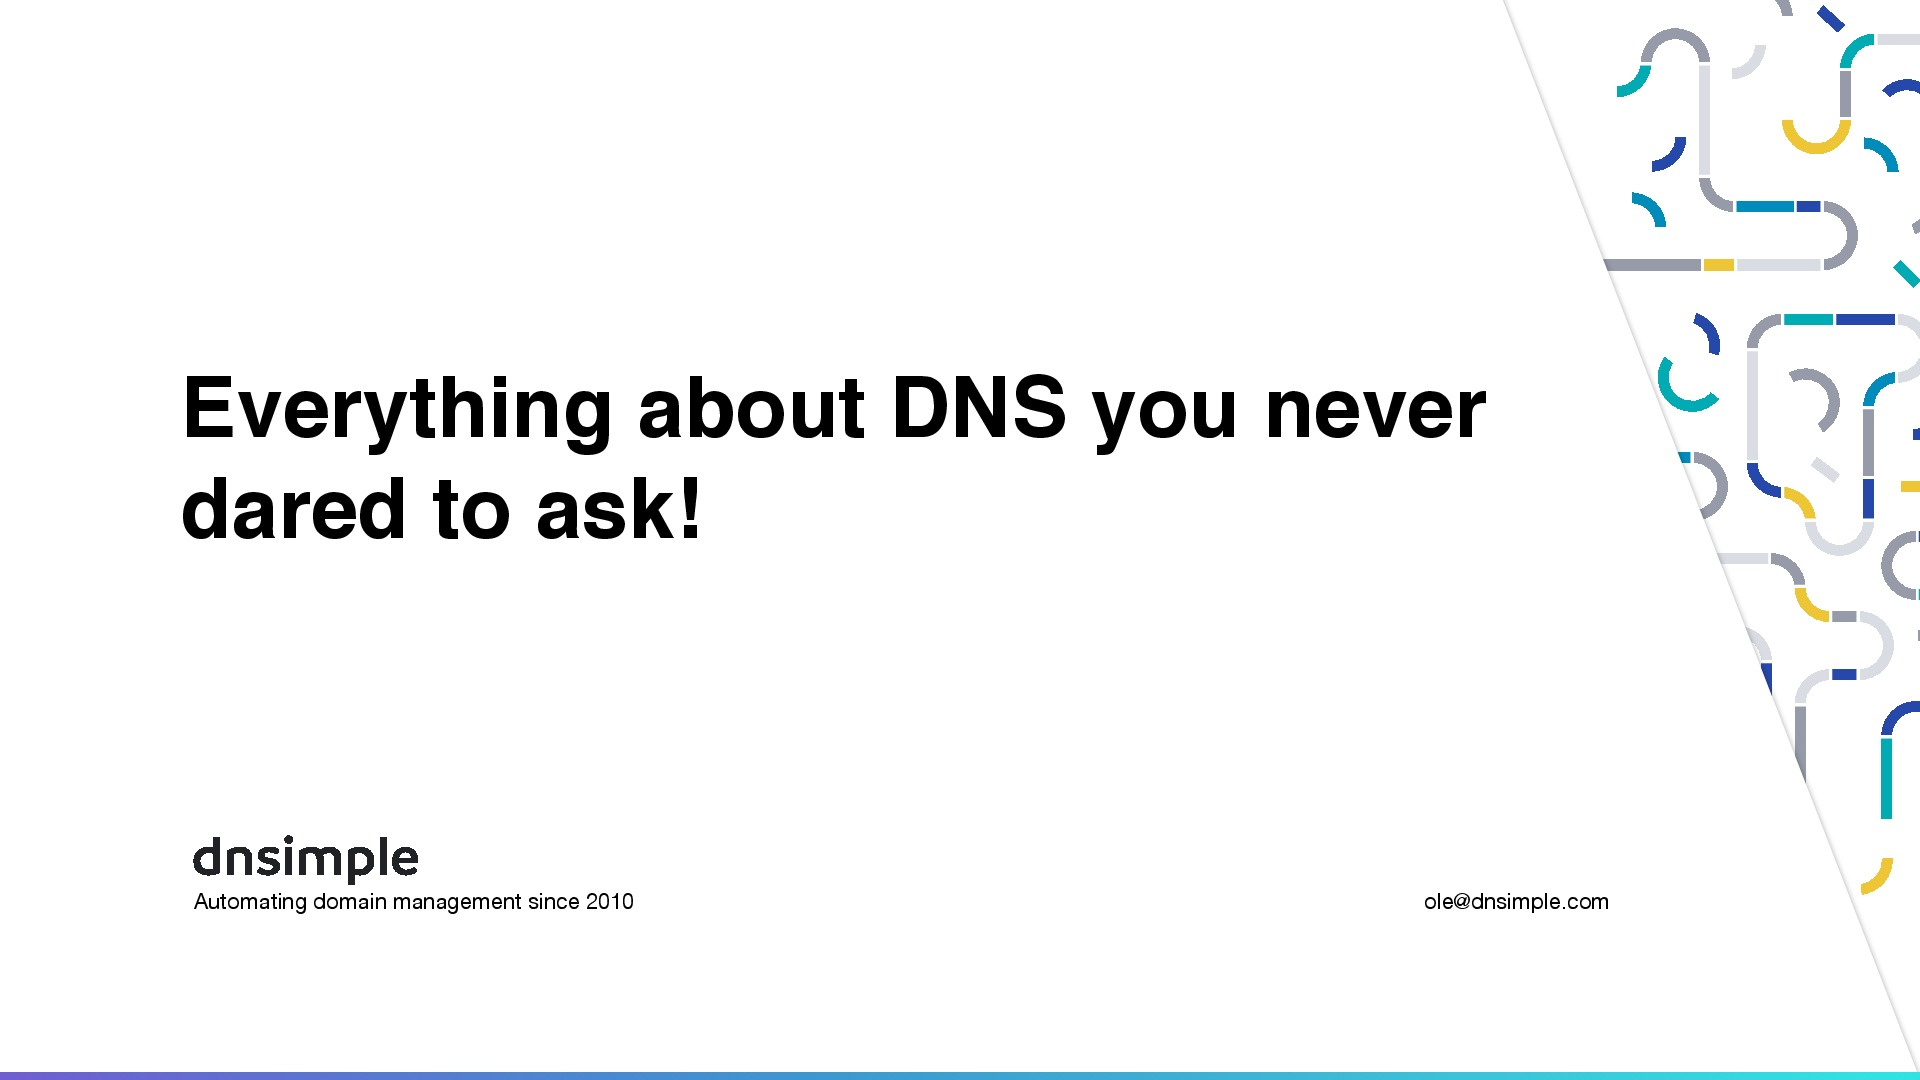 Everything about DNS you never dared to ask!